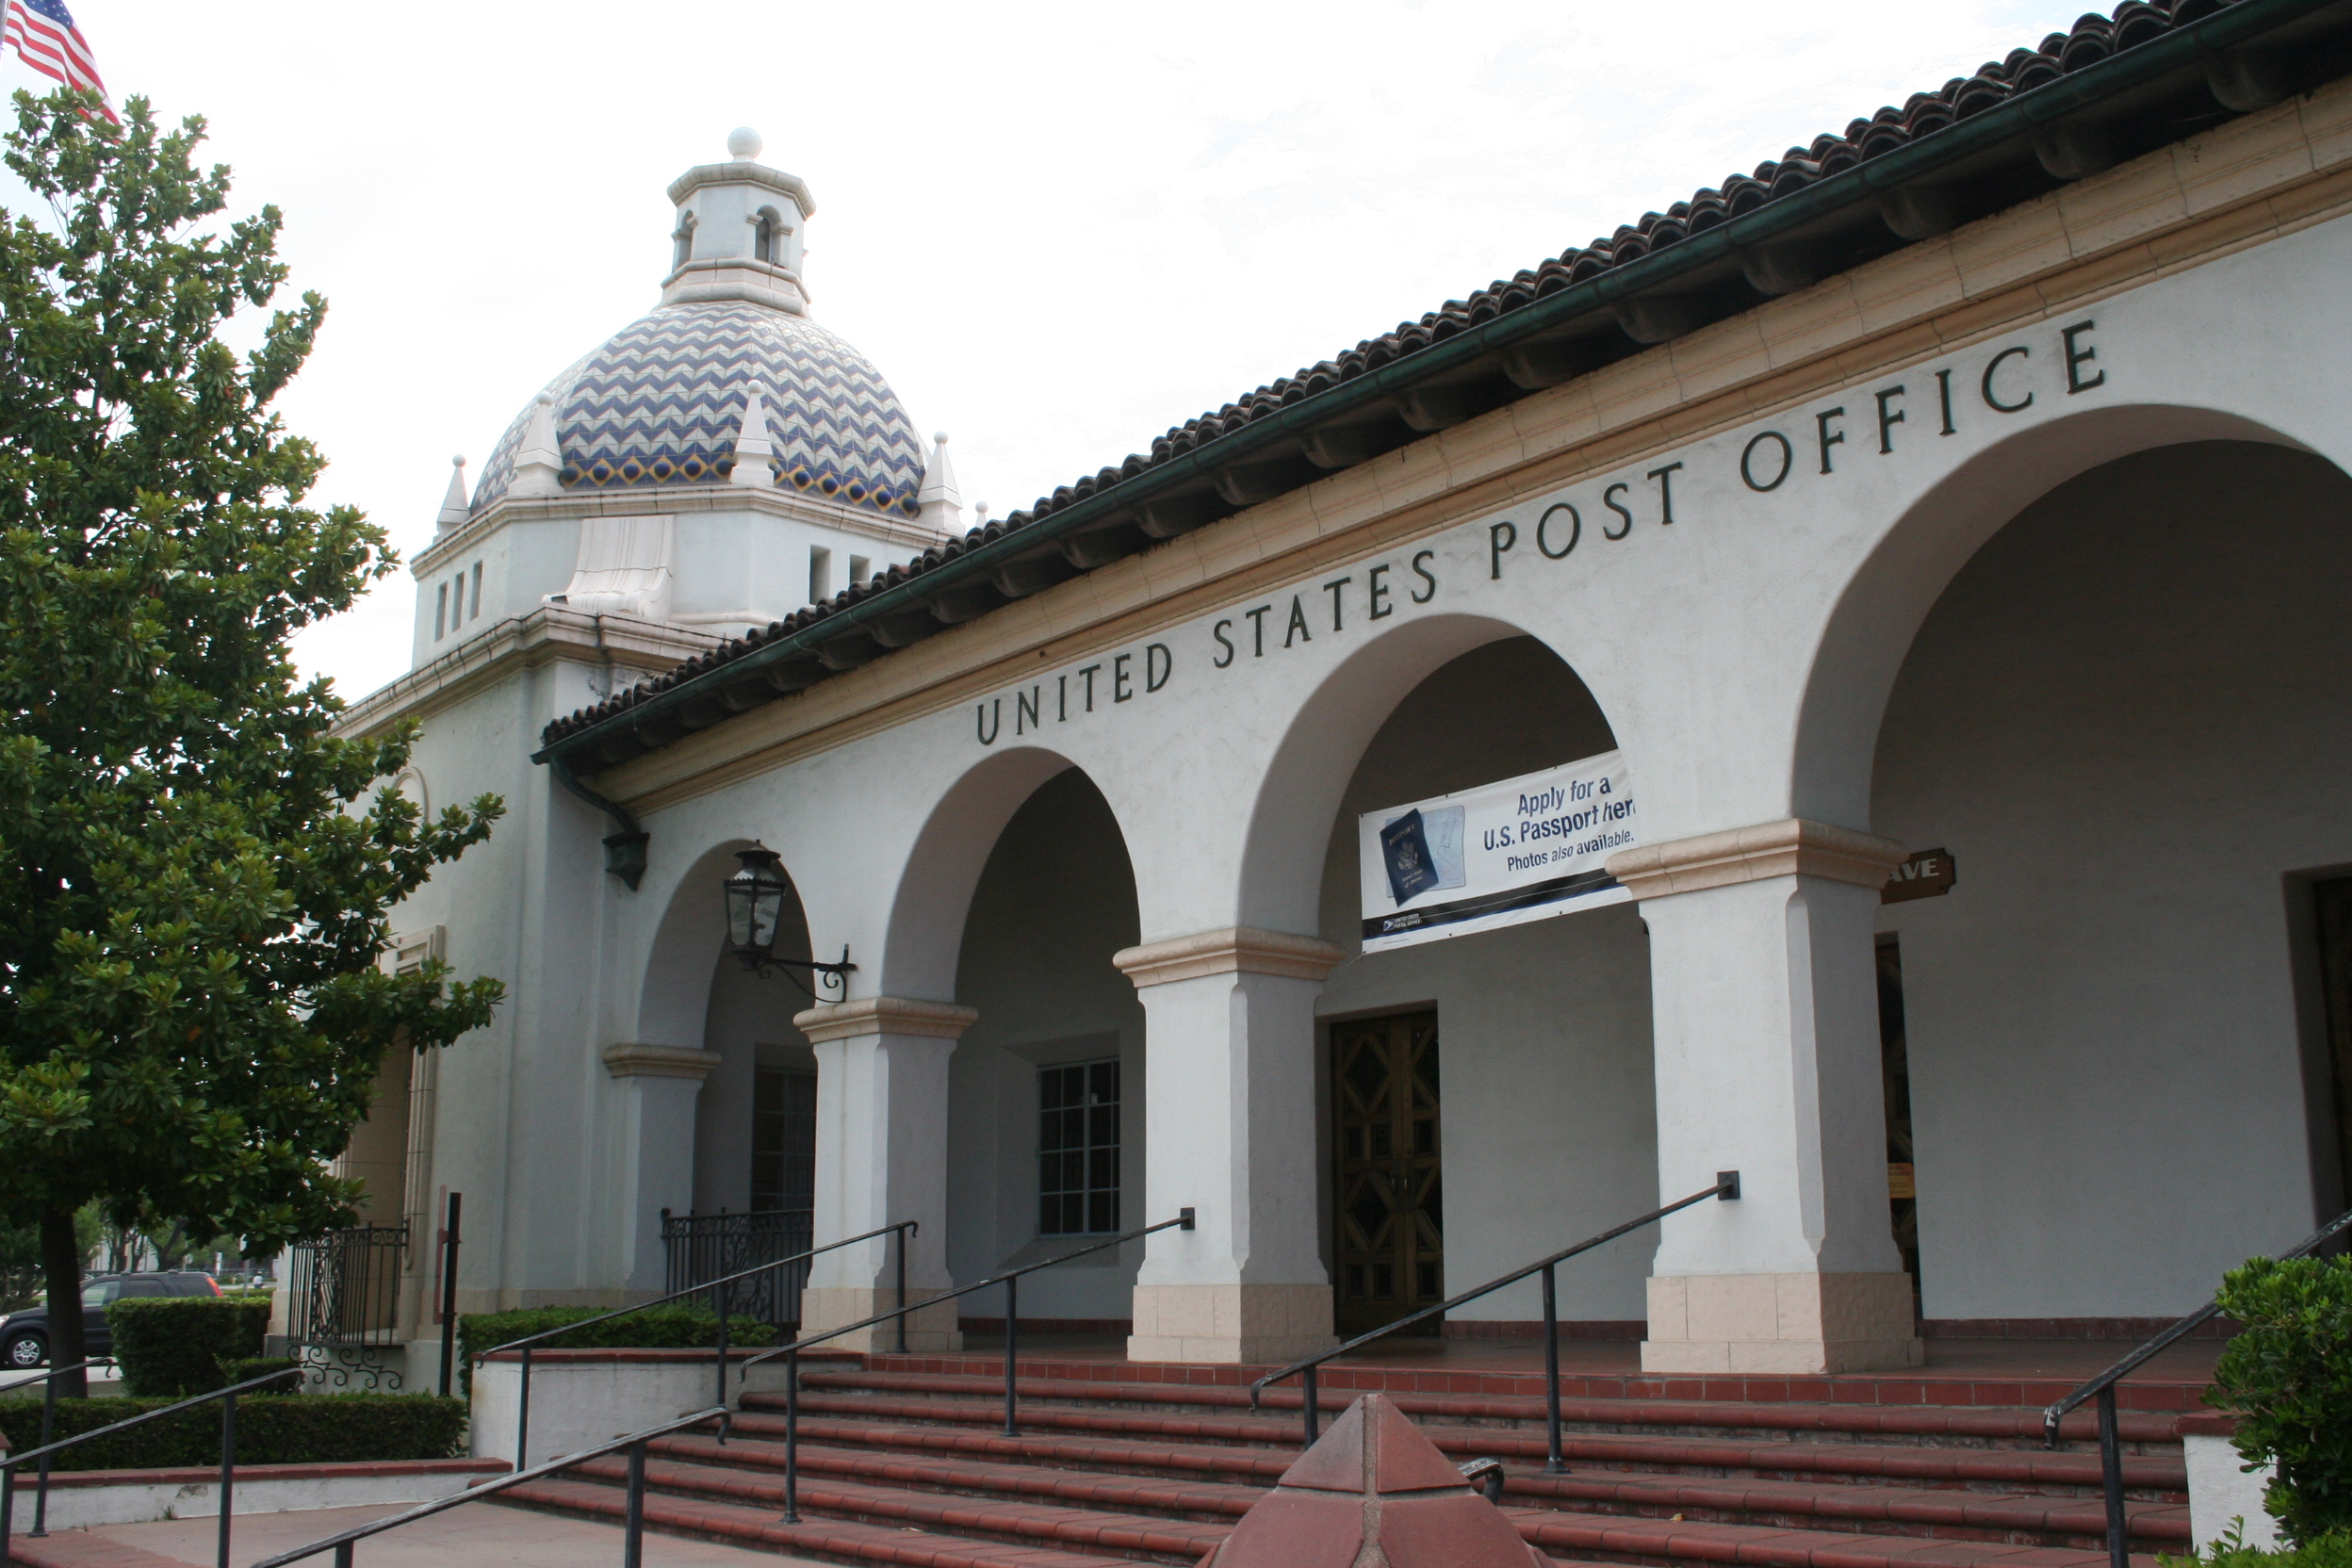 FilePost fice Redlands Californiag Wikimedia mons